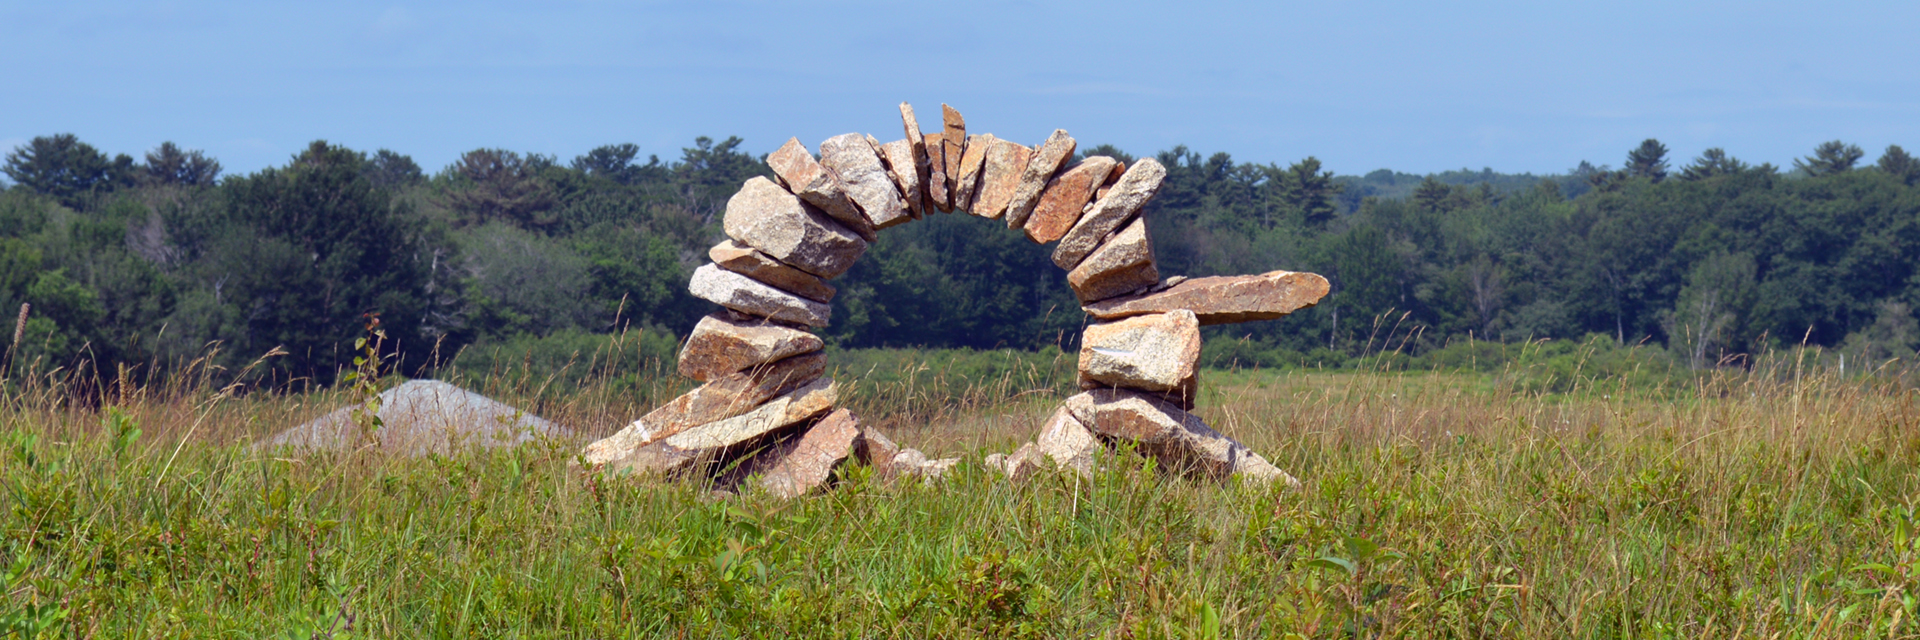 rock-sculpture-Megan-Rohrer.jpg